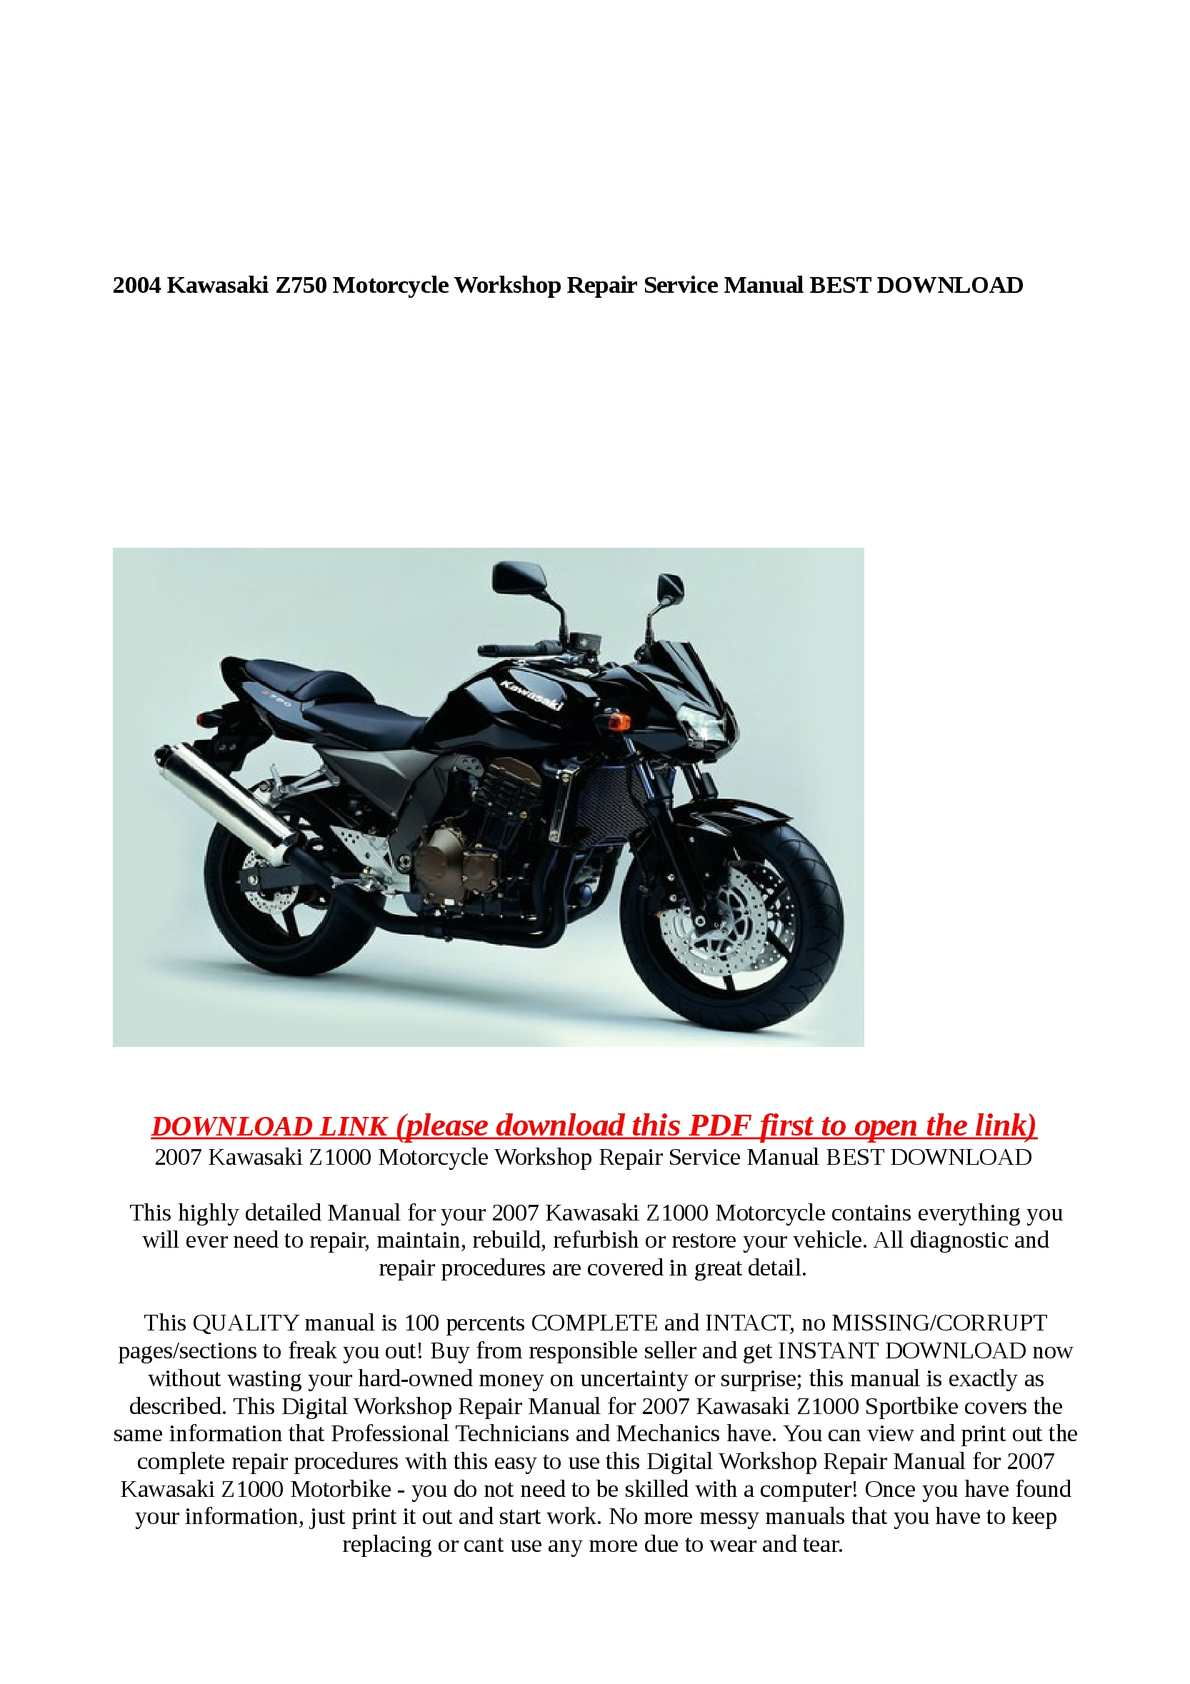 2003 Honda Xr650l Wiring Diagram